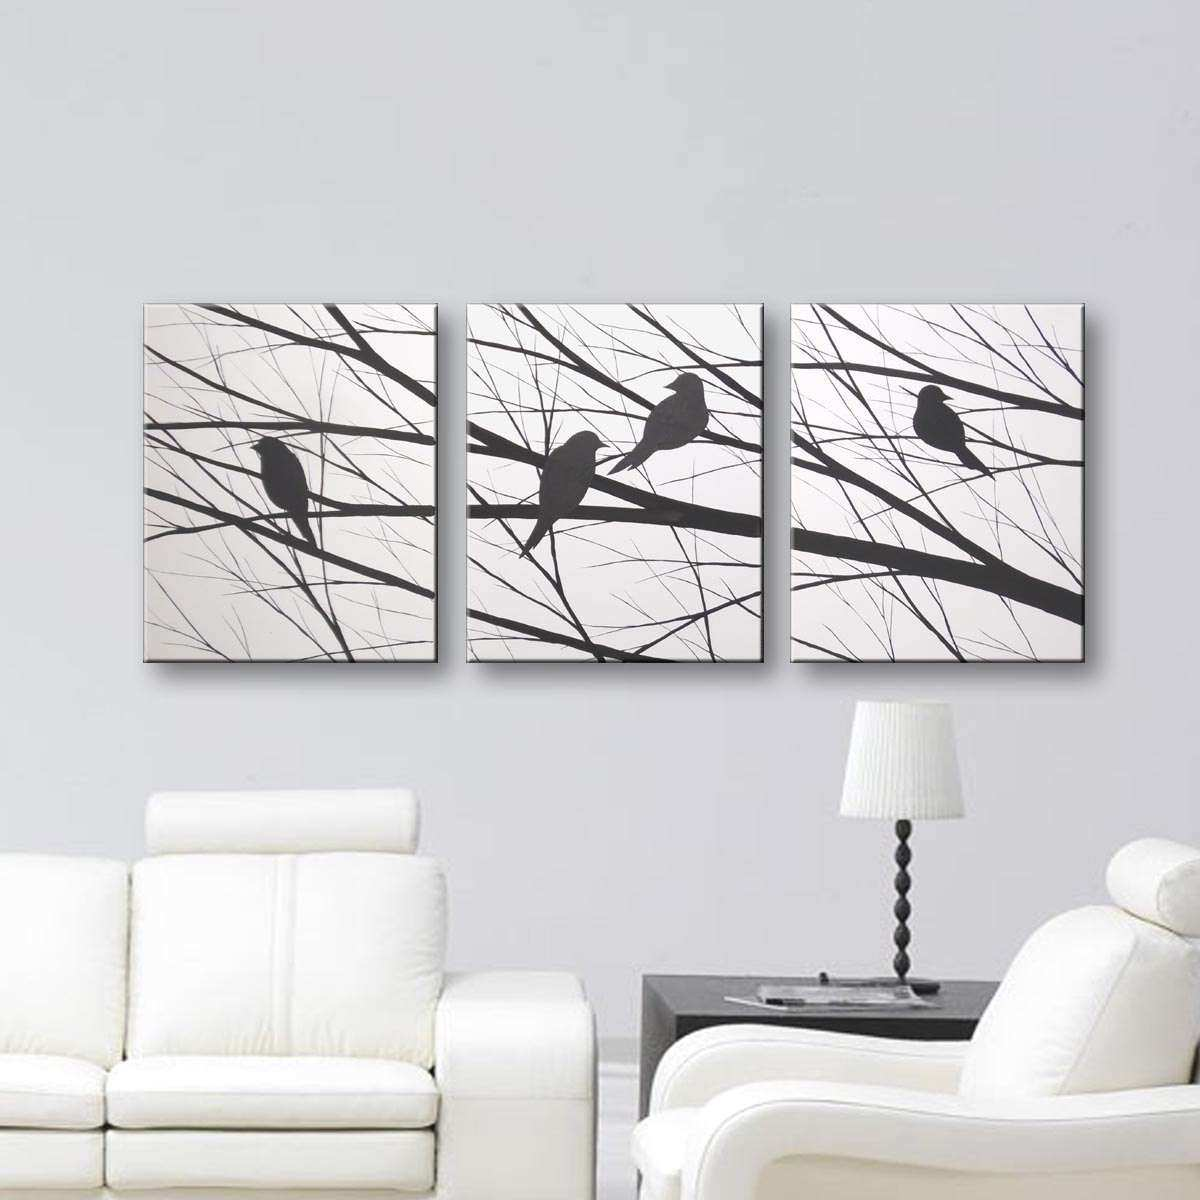 Bird Canvas Wall Art Inspirational Sale Love Birds Silhouette Wall Art Canvas Art by toddevansart